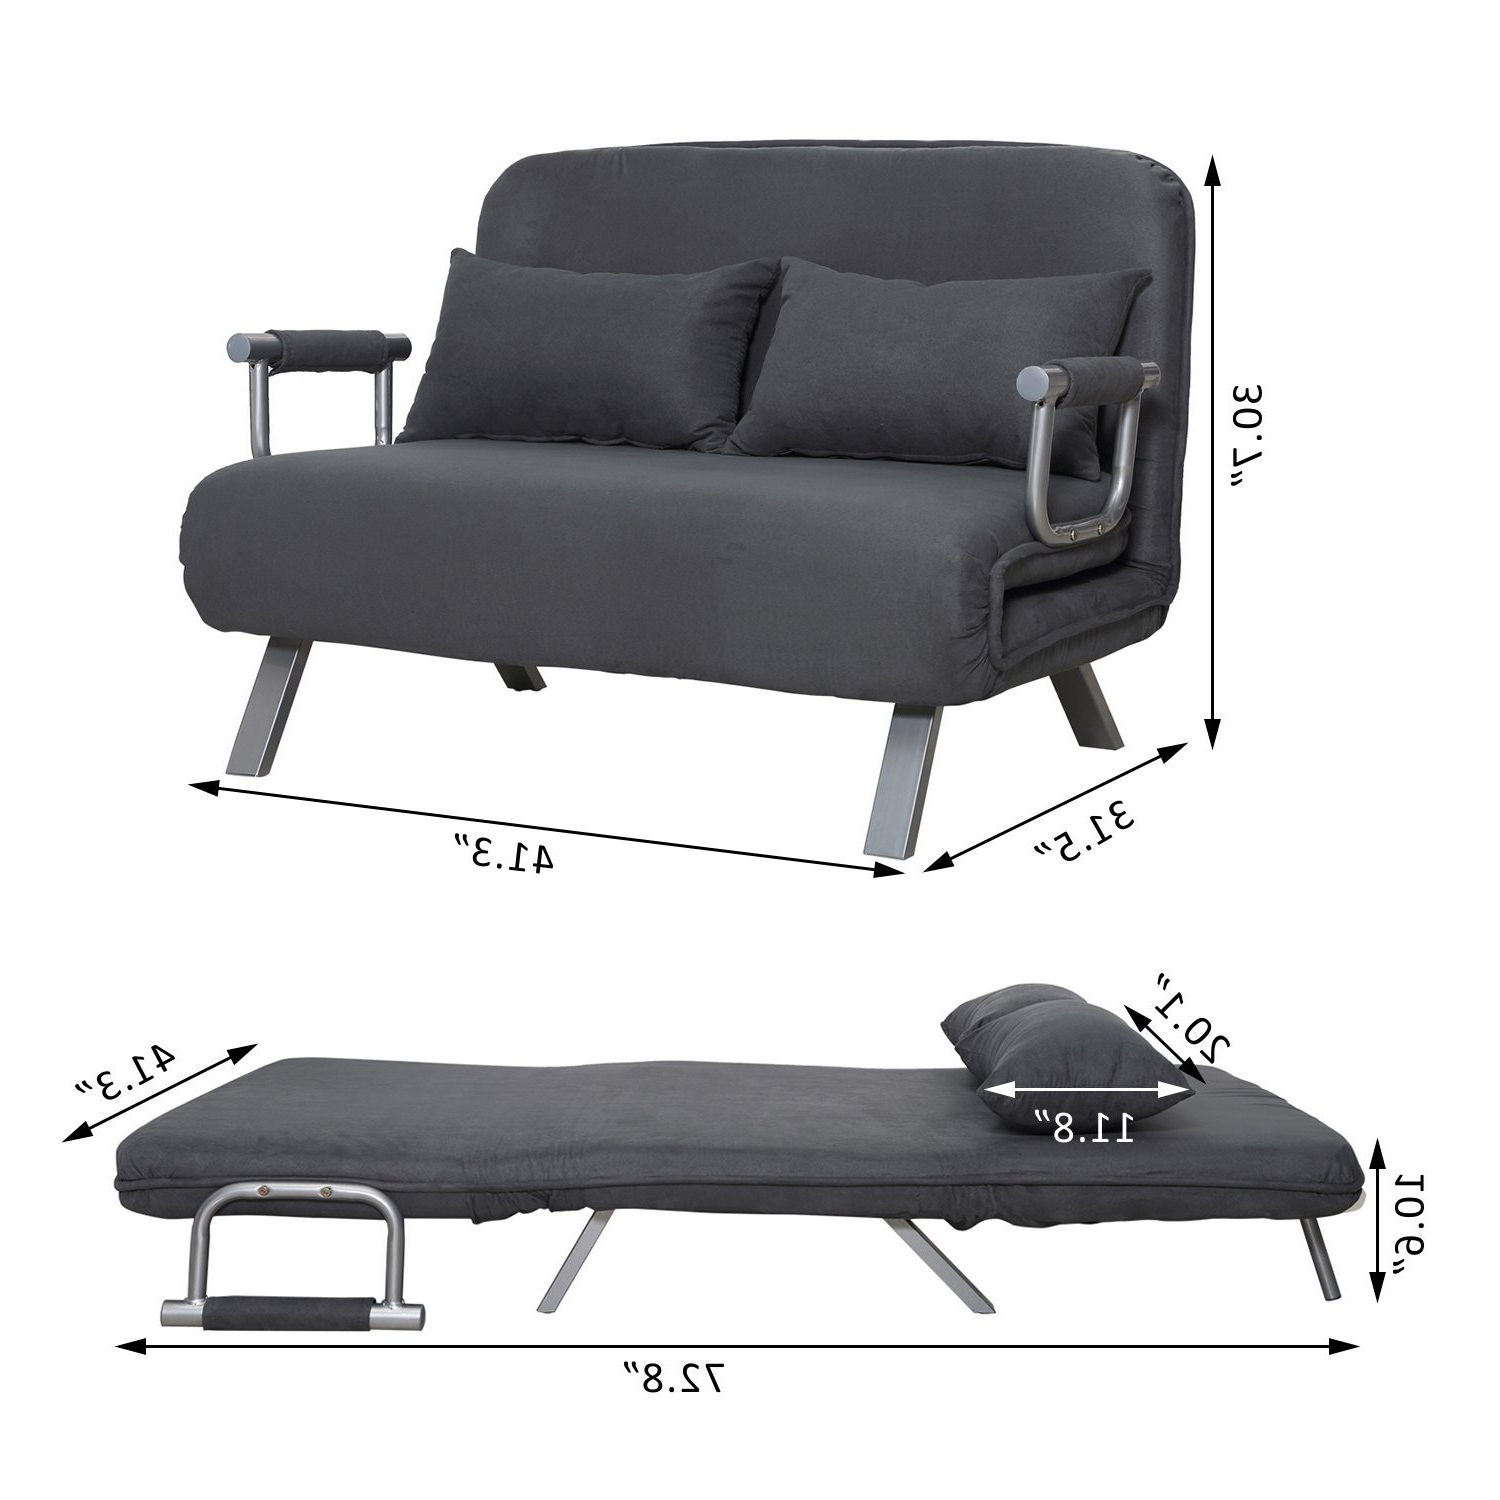 Trendy Single Seat Sofa Chairs Intended For Amazon: Homcom Suede Fabric Lounge Futon Sofa Chair – Gray (View 11 of 15)